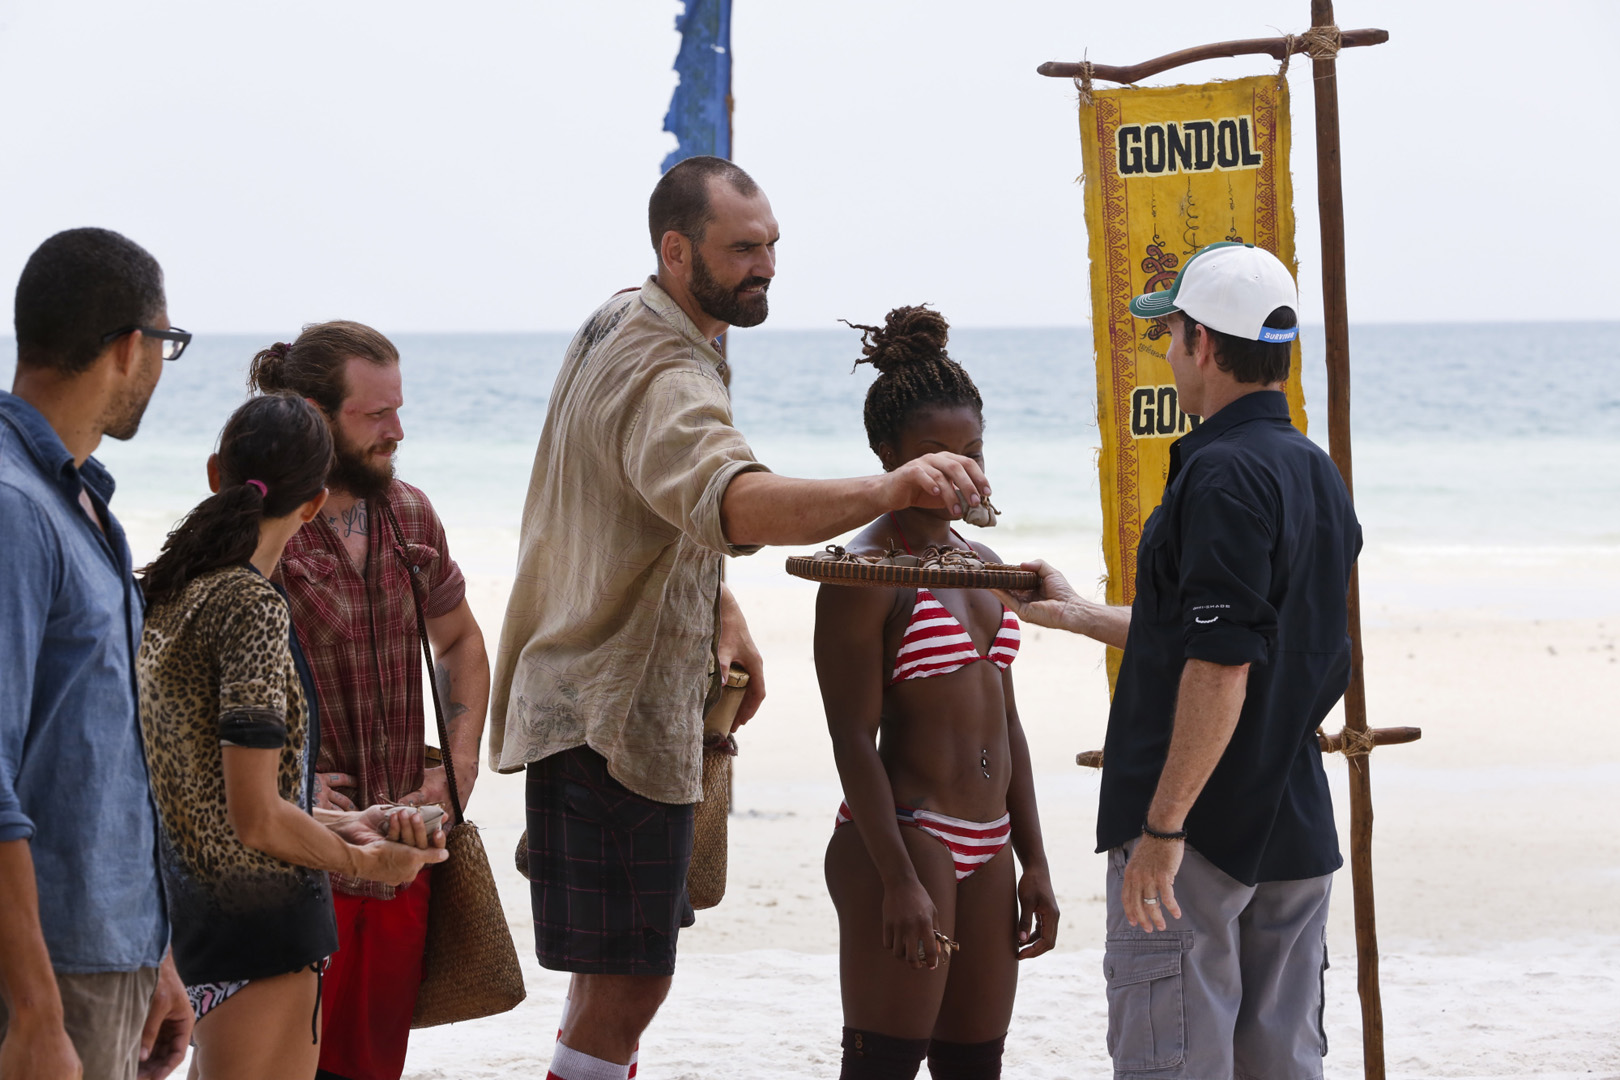 Scot picks a new buff during the much-anticipated Survivor tribe swap.